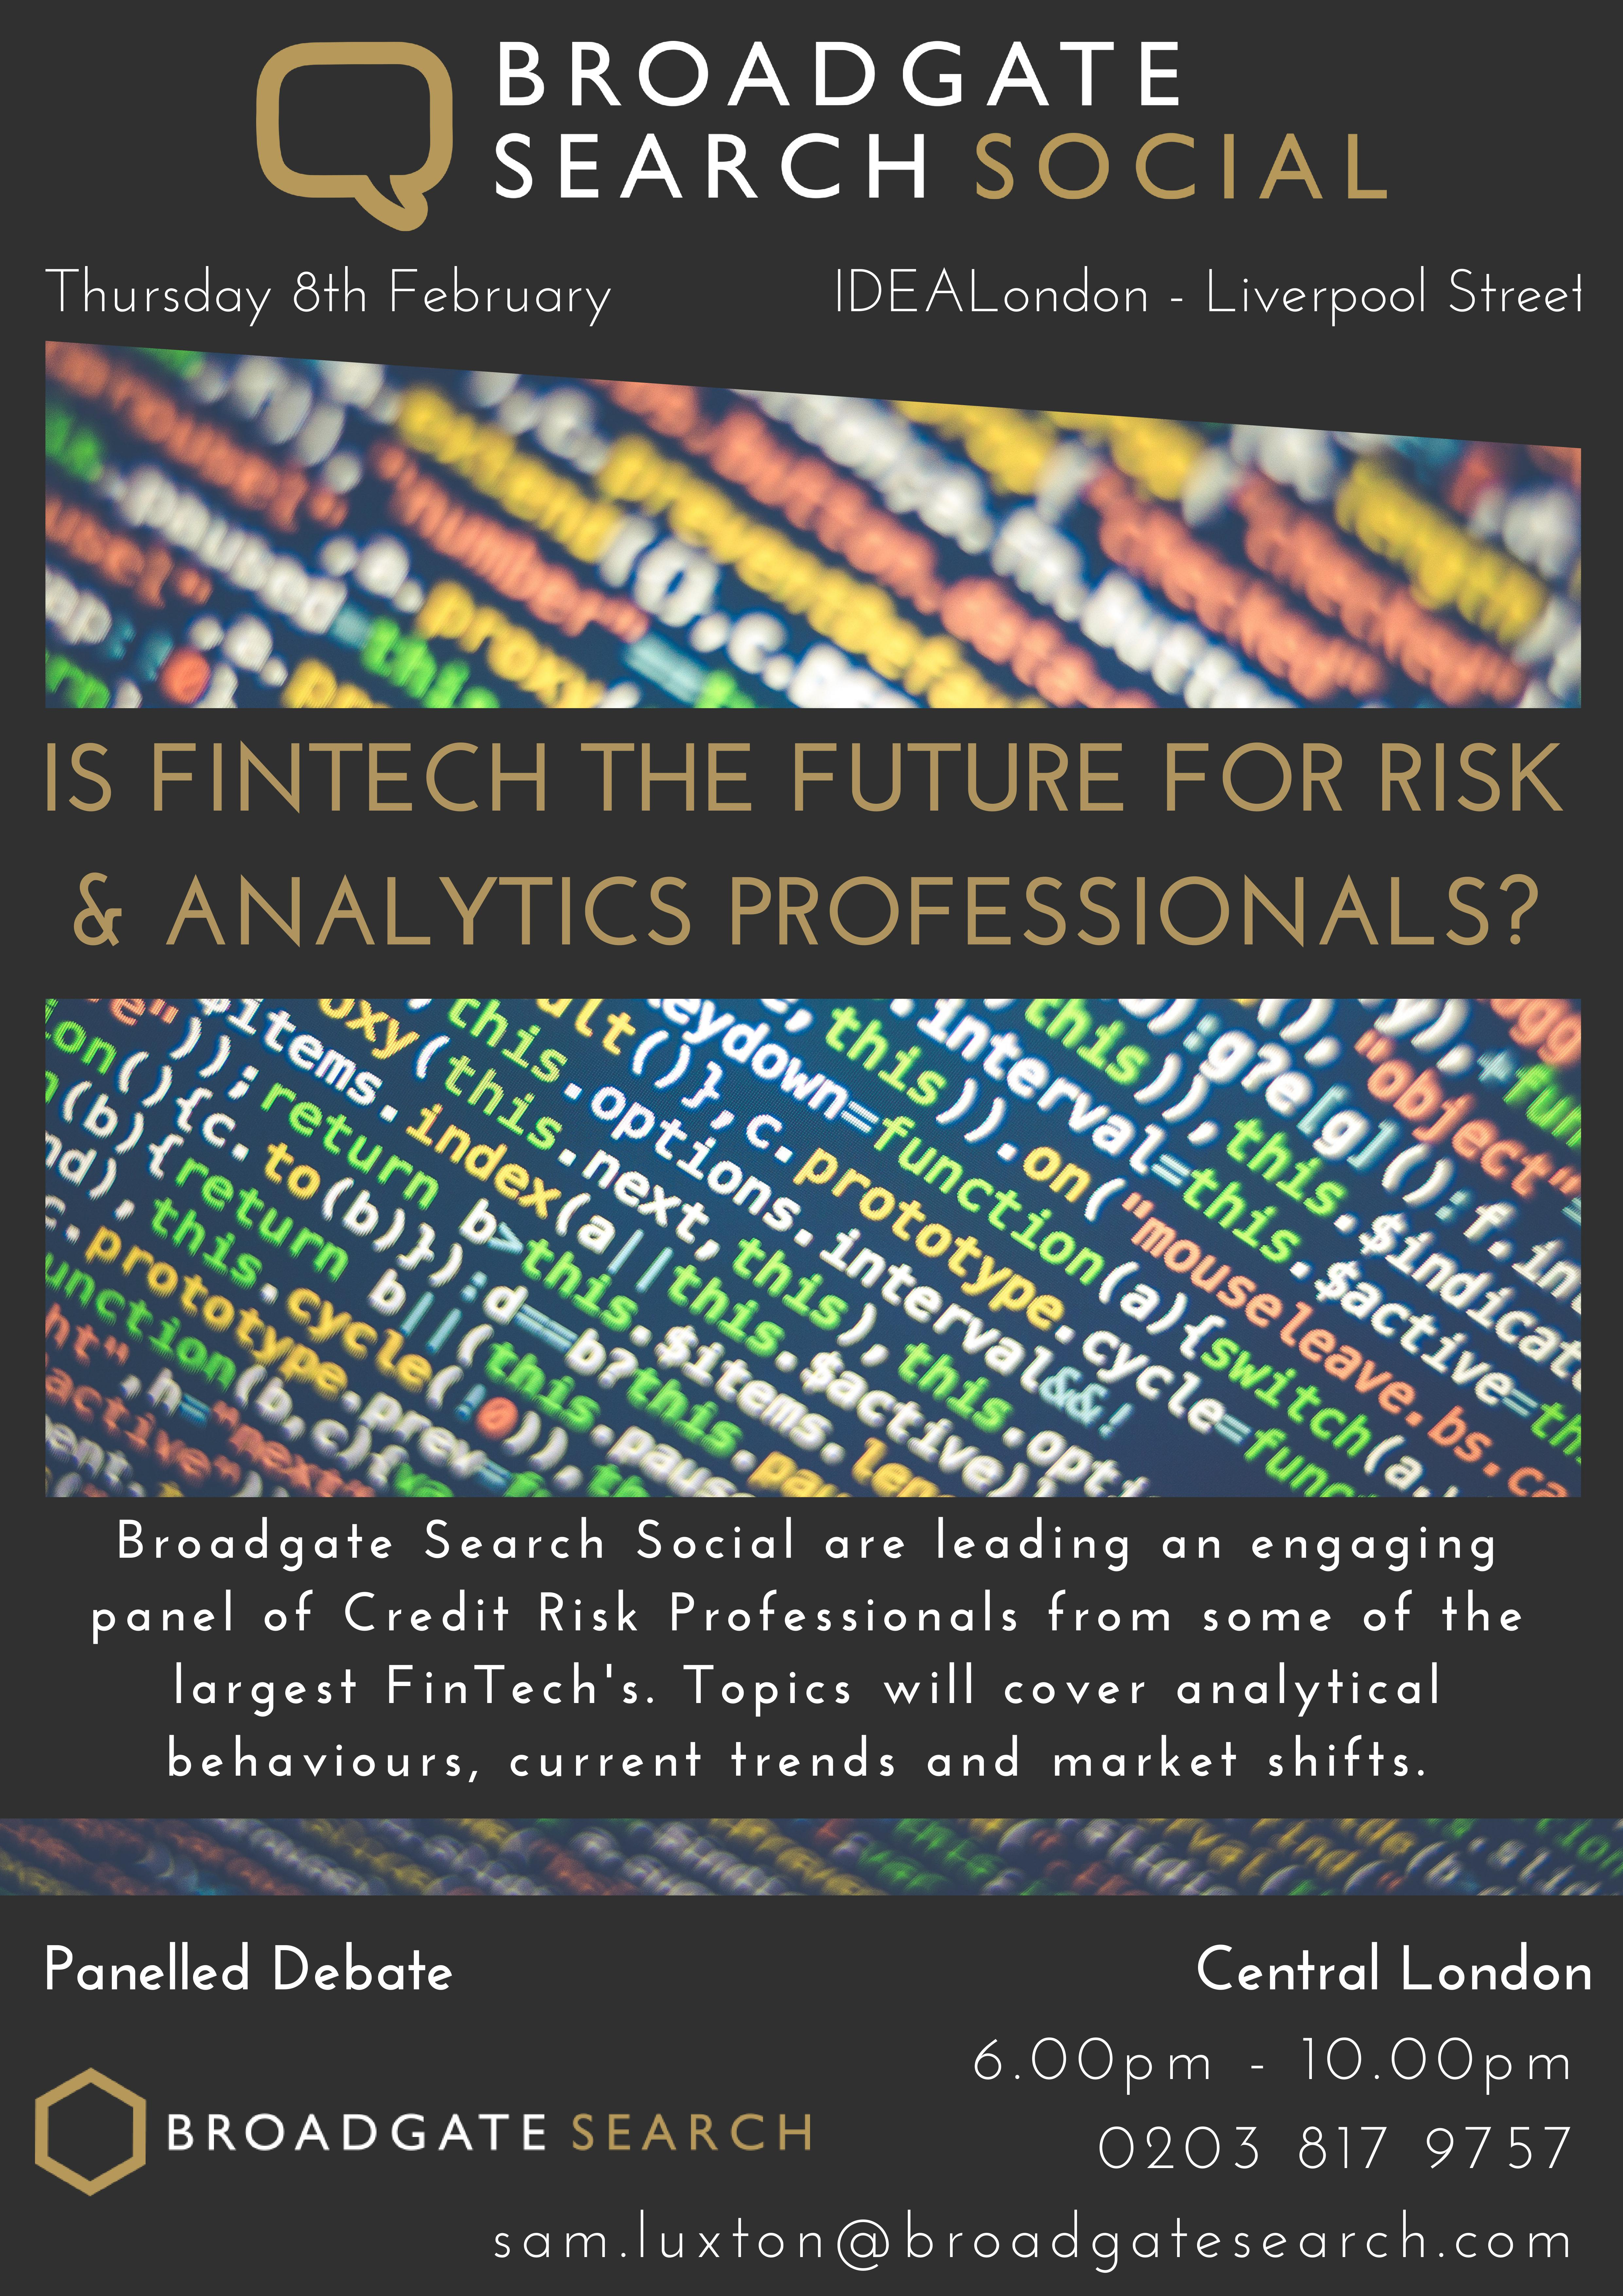 Broadgate Search Social - Is Fintech the Future for Risk and Analytical Professionals Panel Discussion